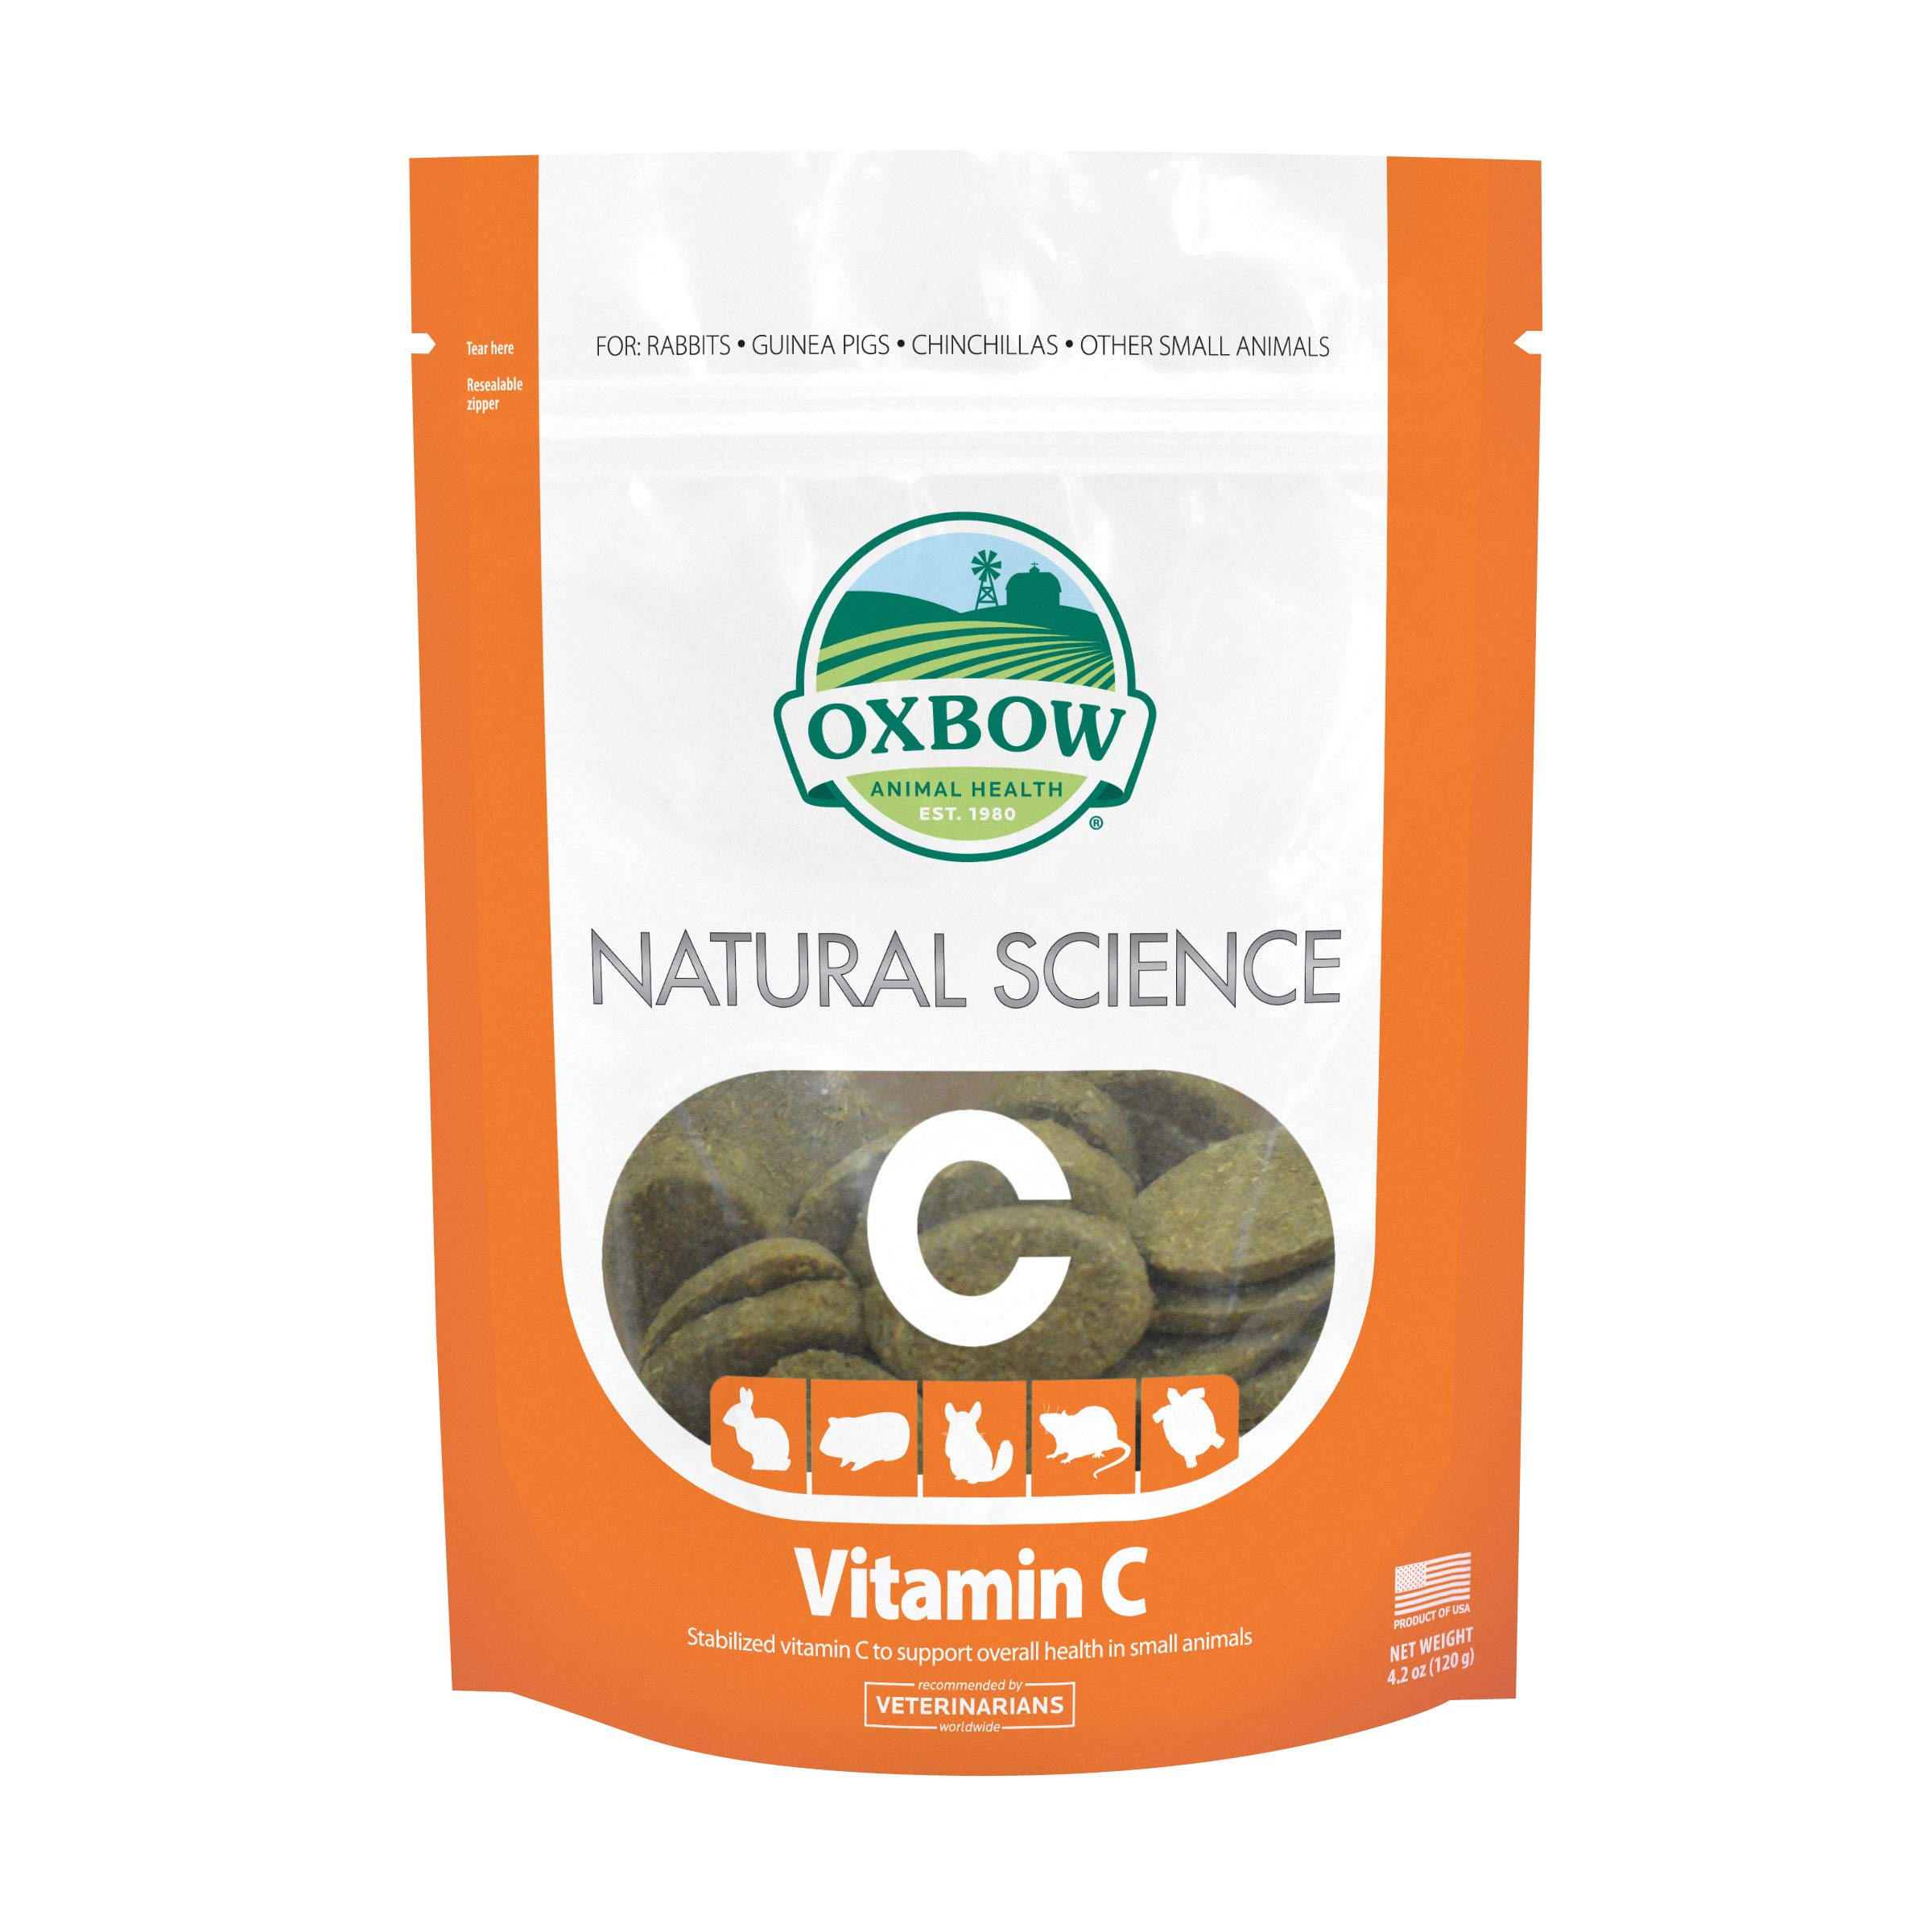 Oxbow Natural Science Vitamin C Supplement 60 tabs 120g